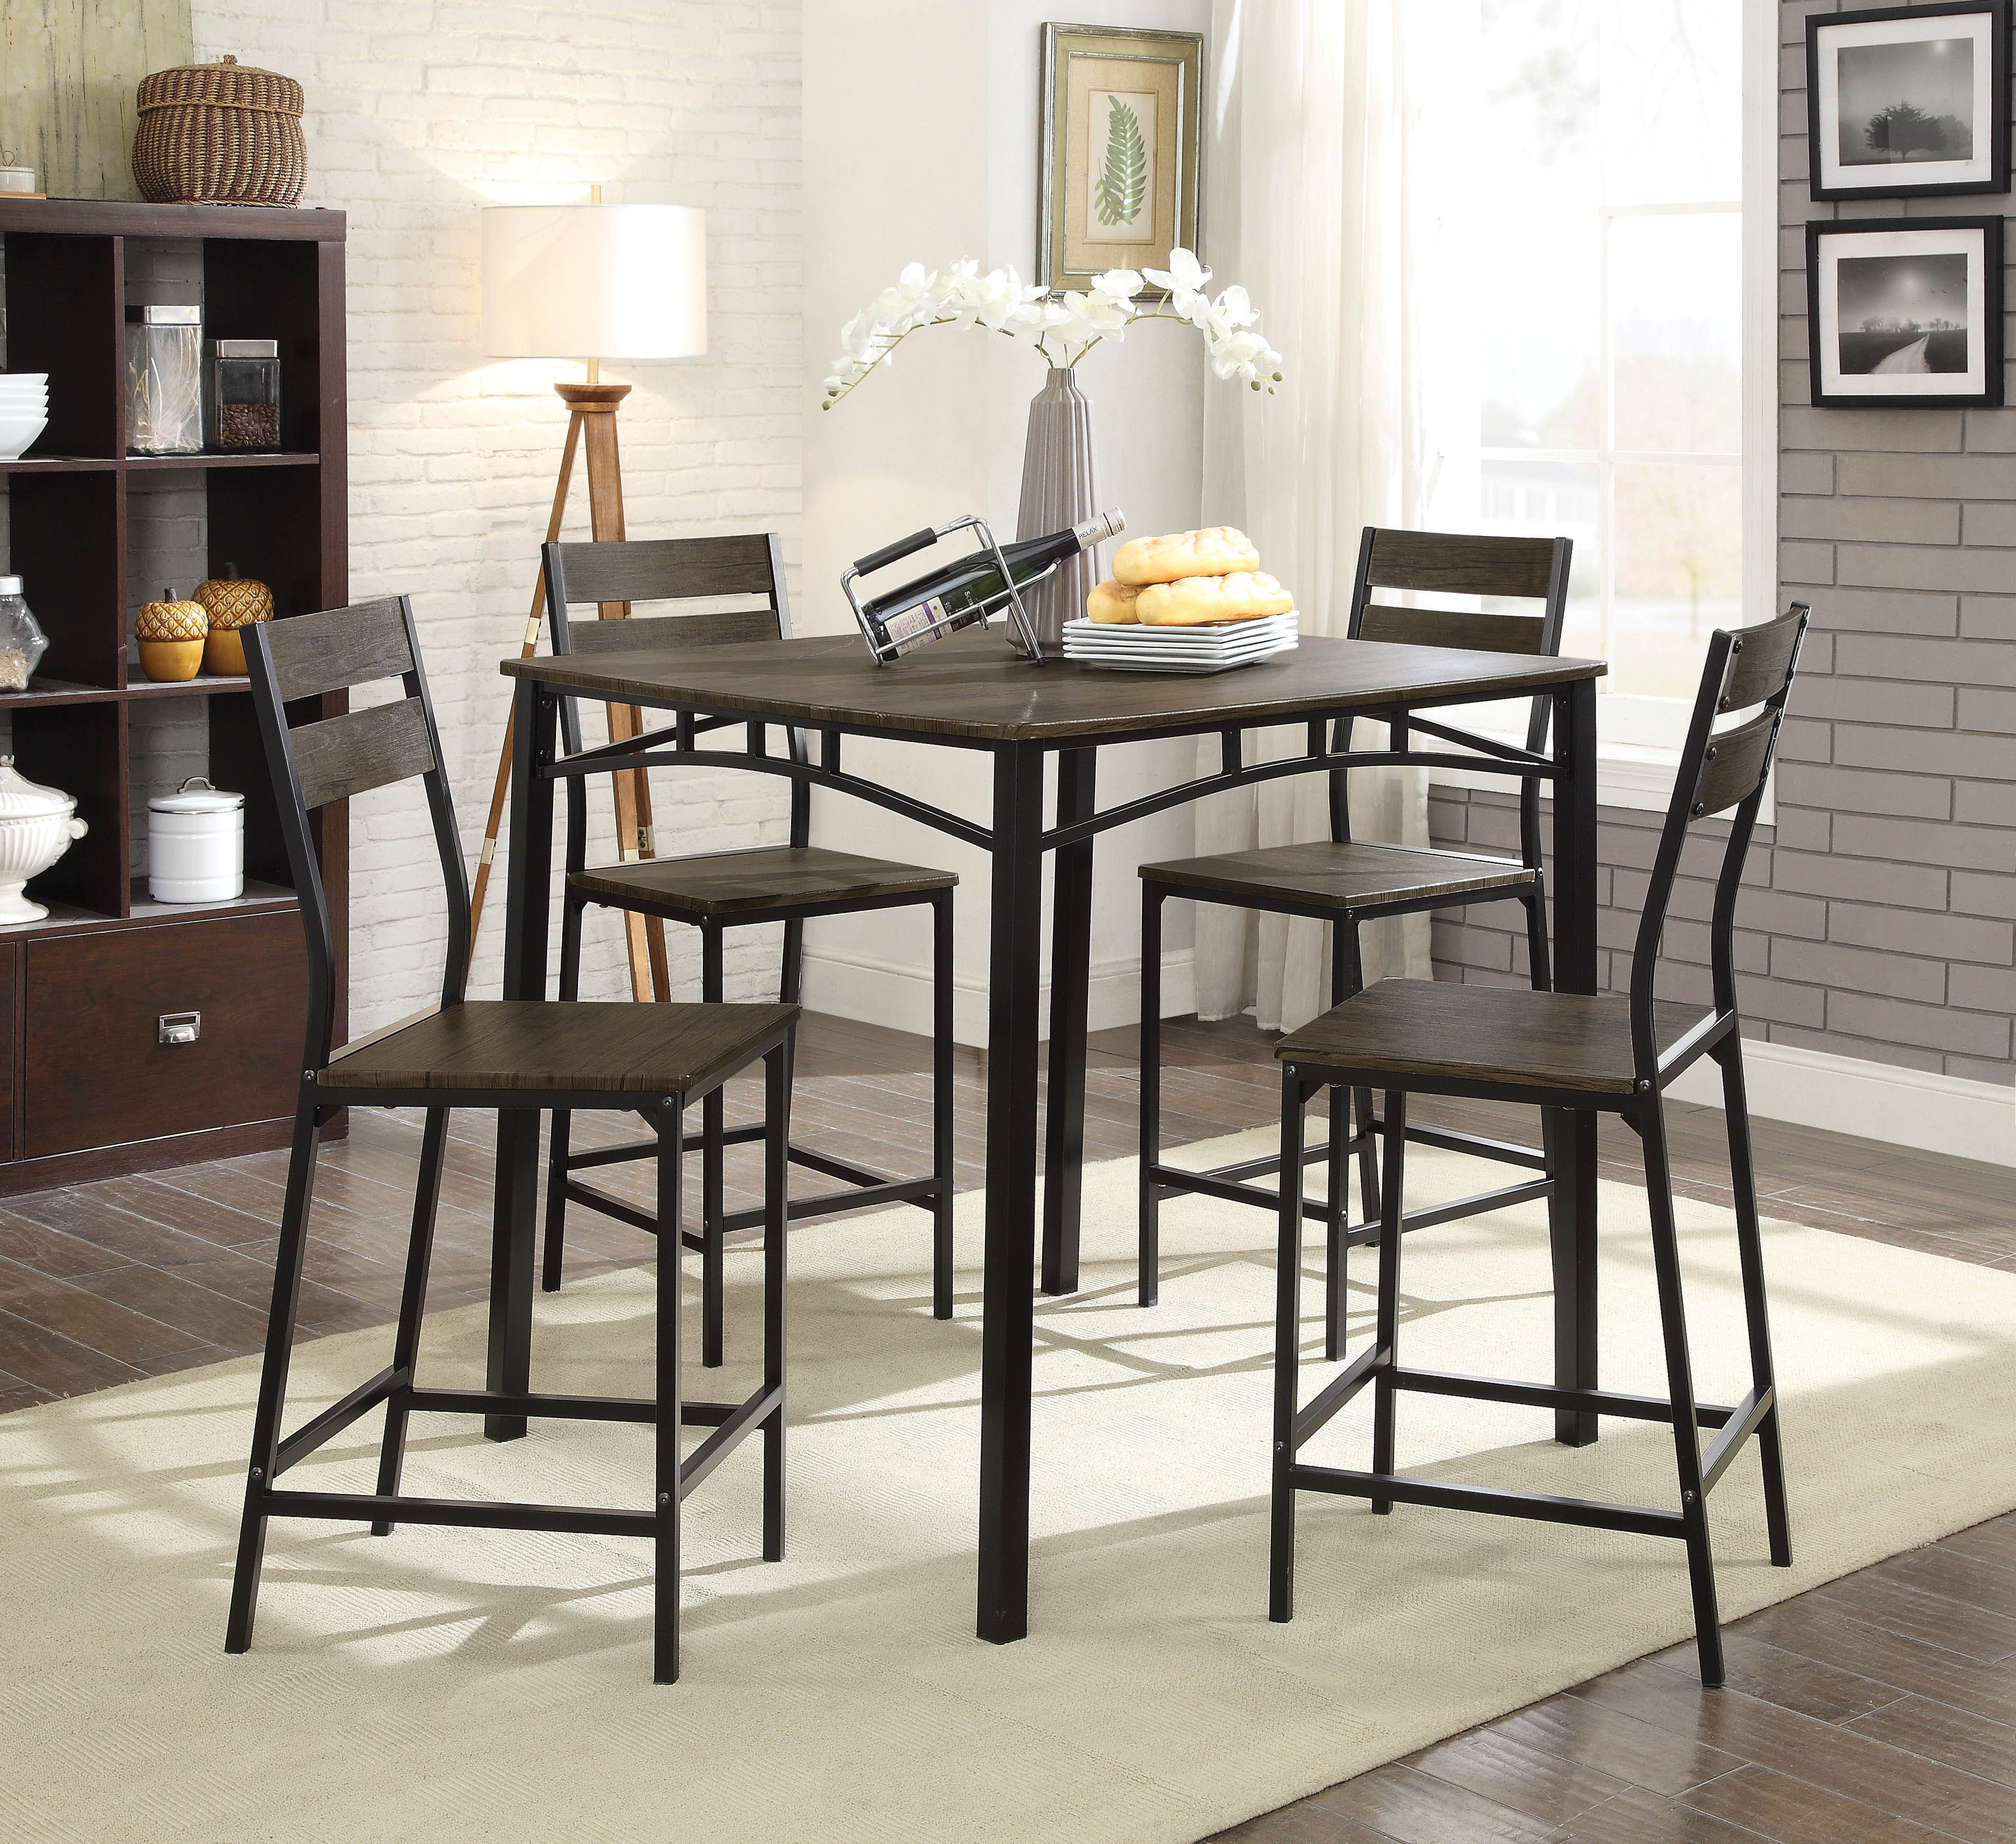 Autberry 5 Piece Pub Table Set Within Most Current Autberry 5 Piece Dining Sets (View 2 of 20)